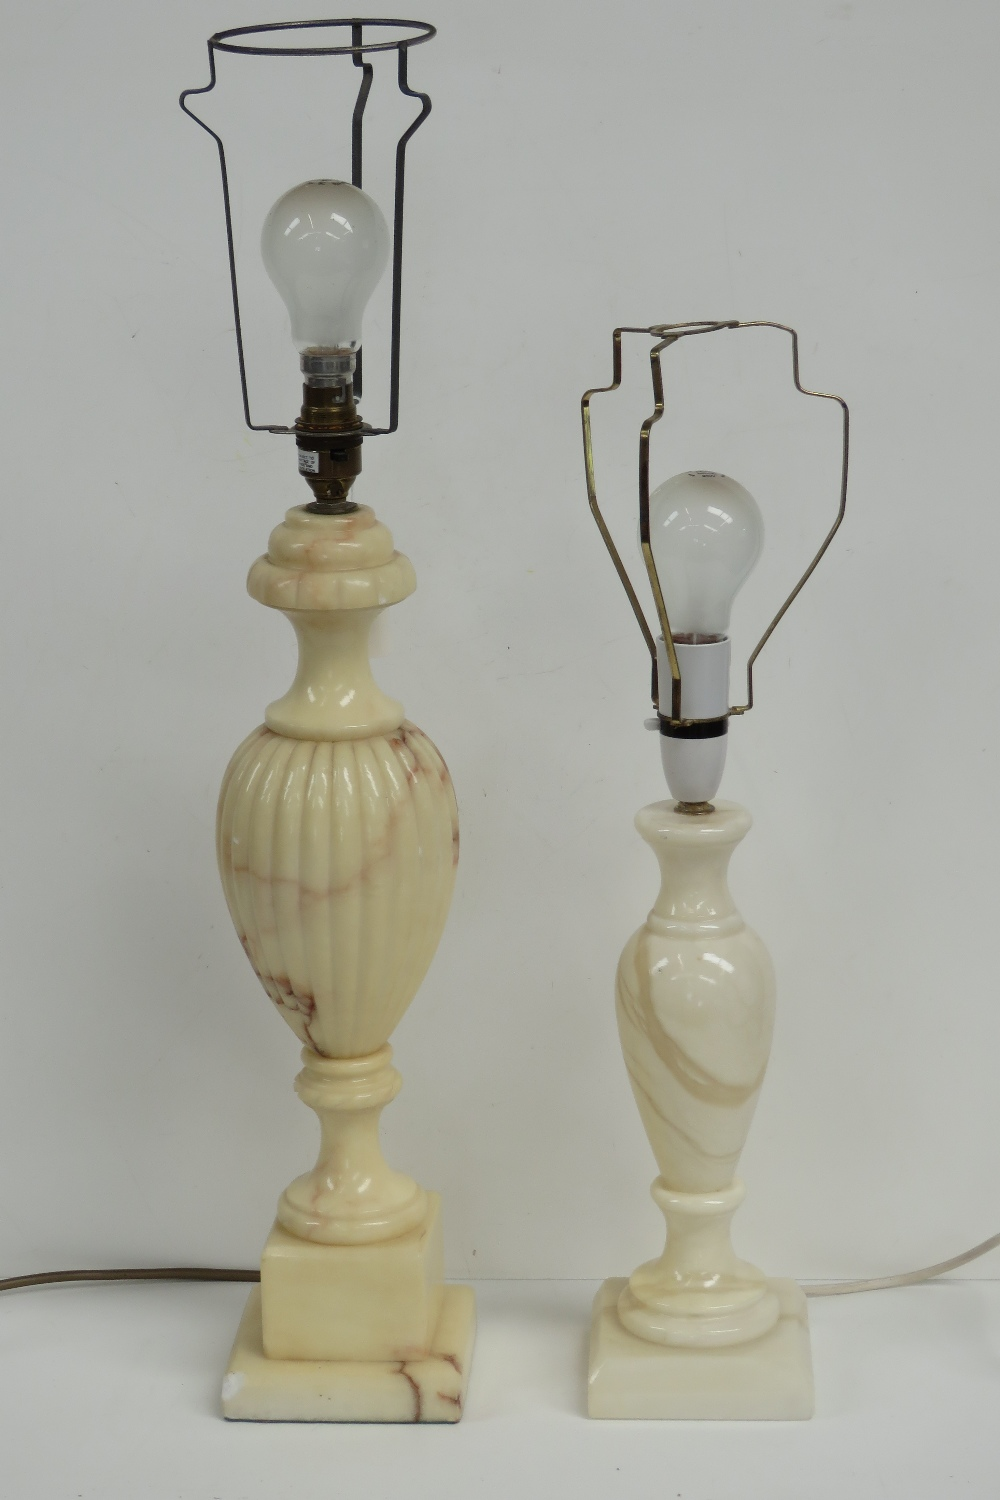 Two alabaster side lamp bases of classic